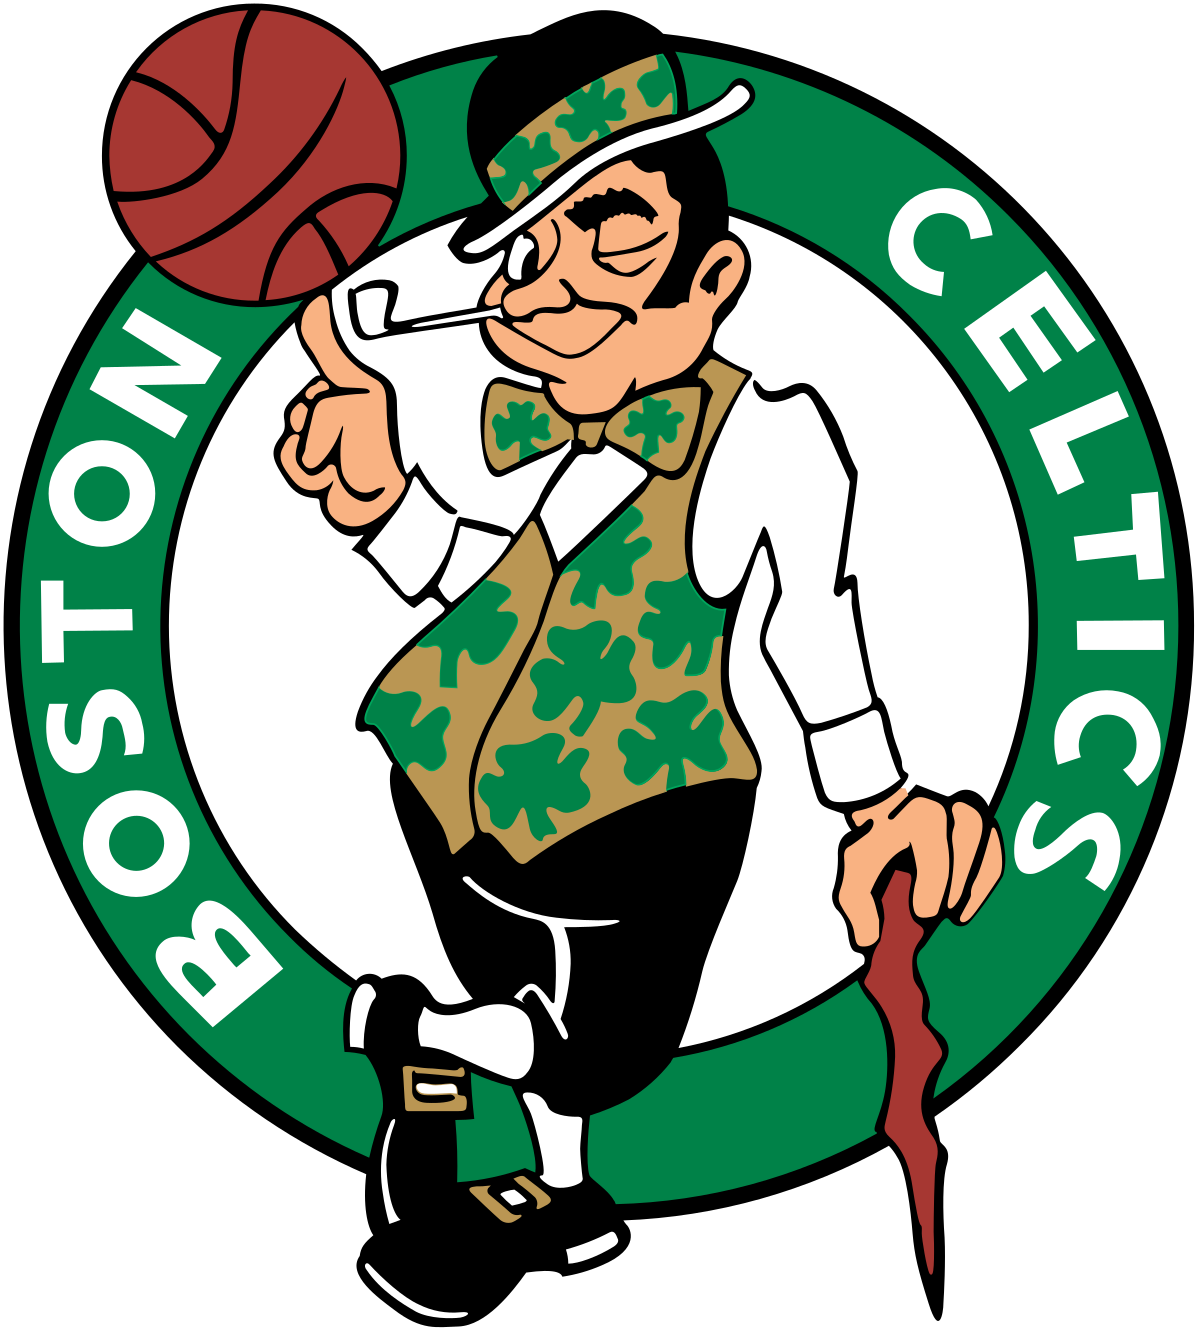 Manager clipart professional appearance. Boston celtics wikipedia